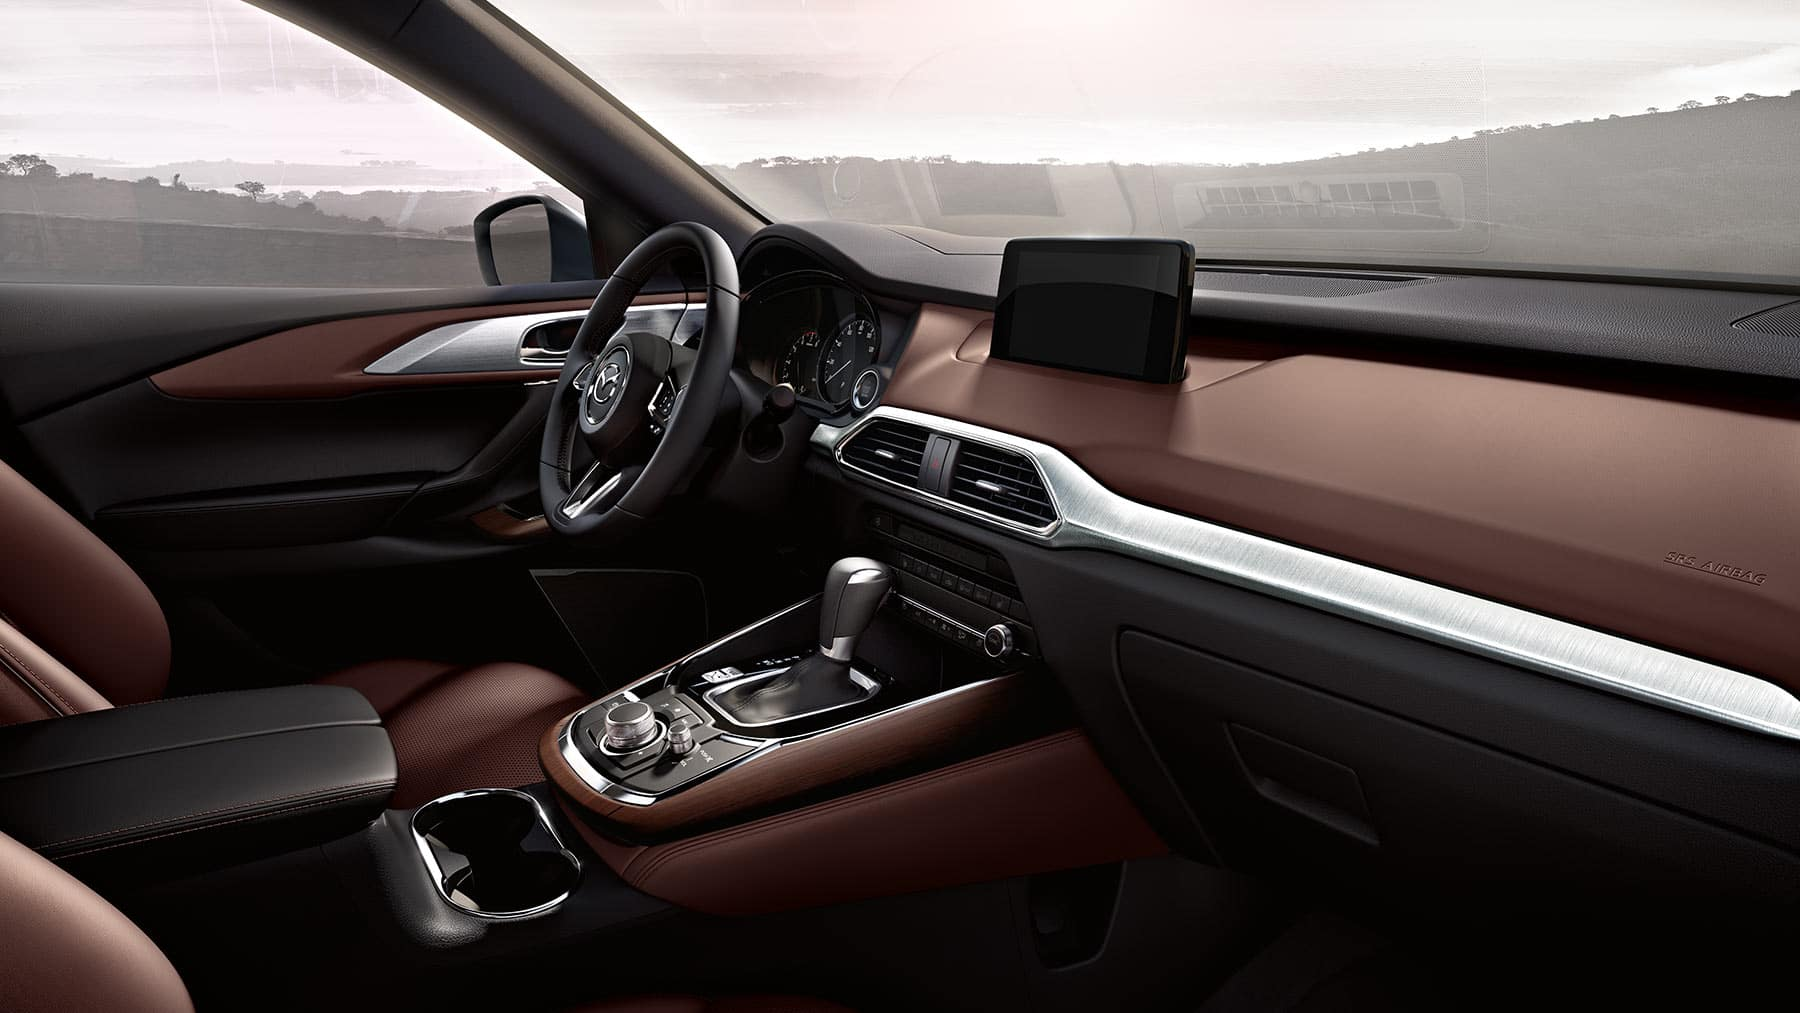 picture of 2020 mazda cx-9 interior